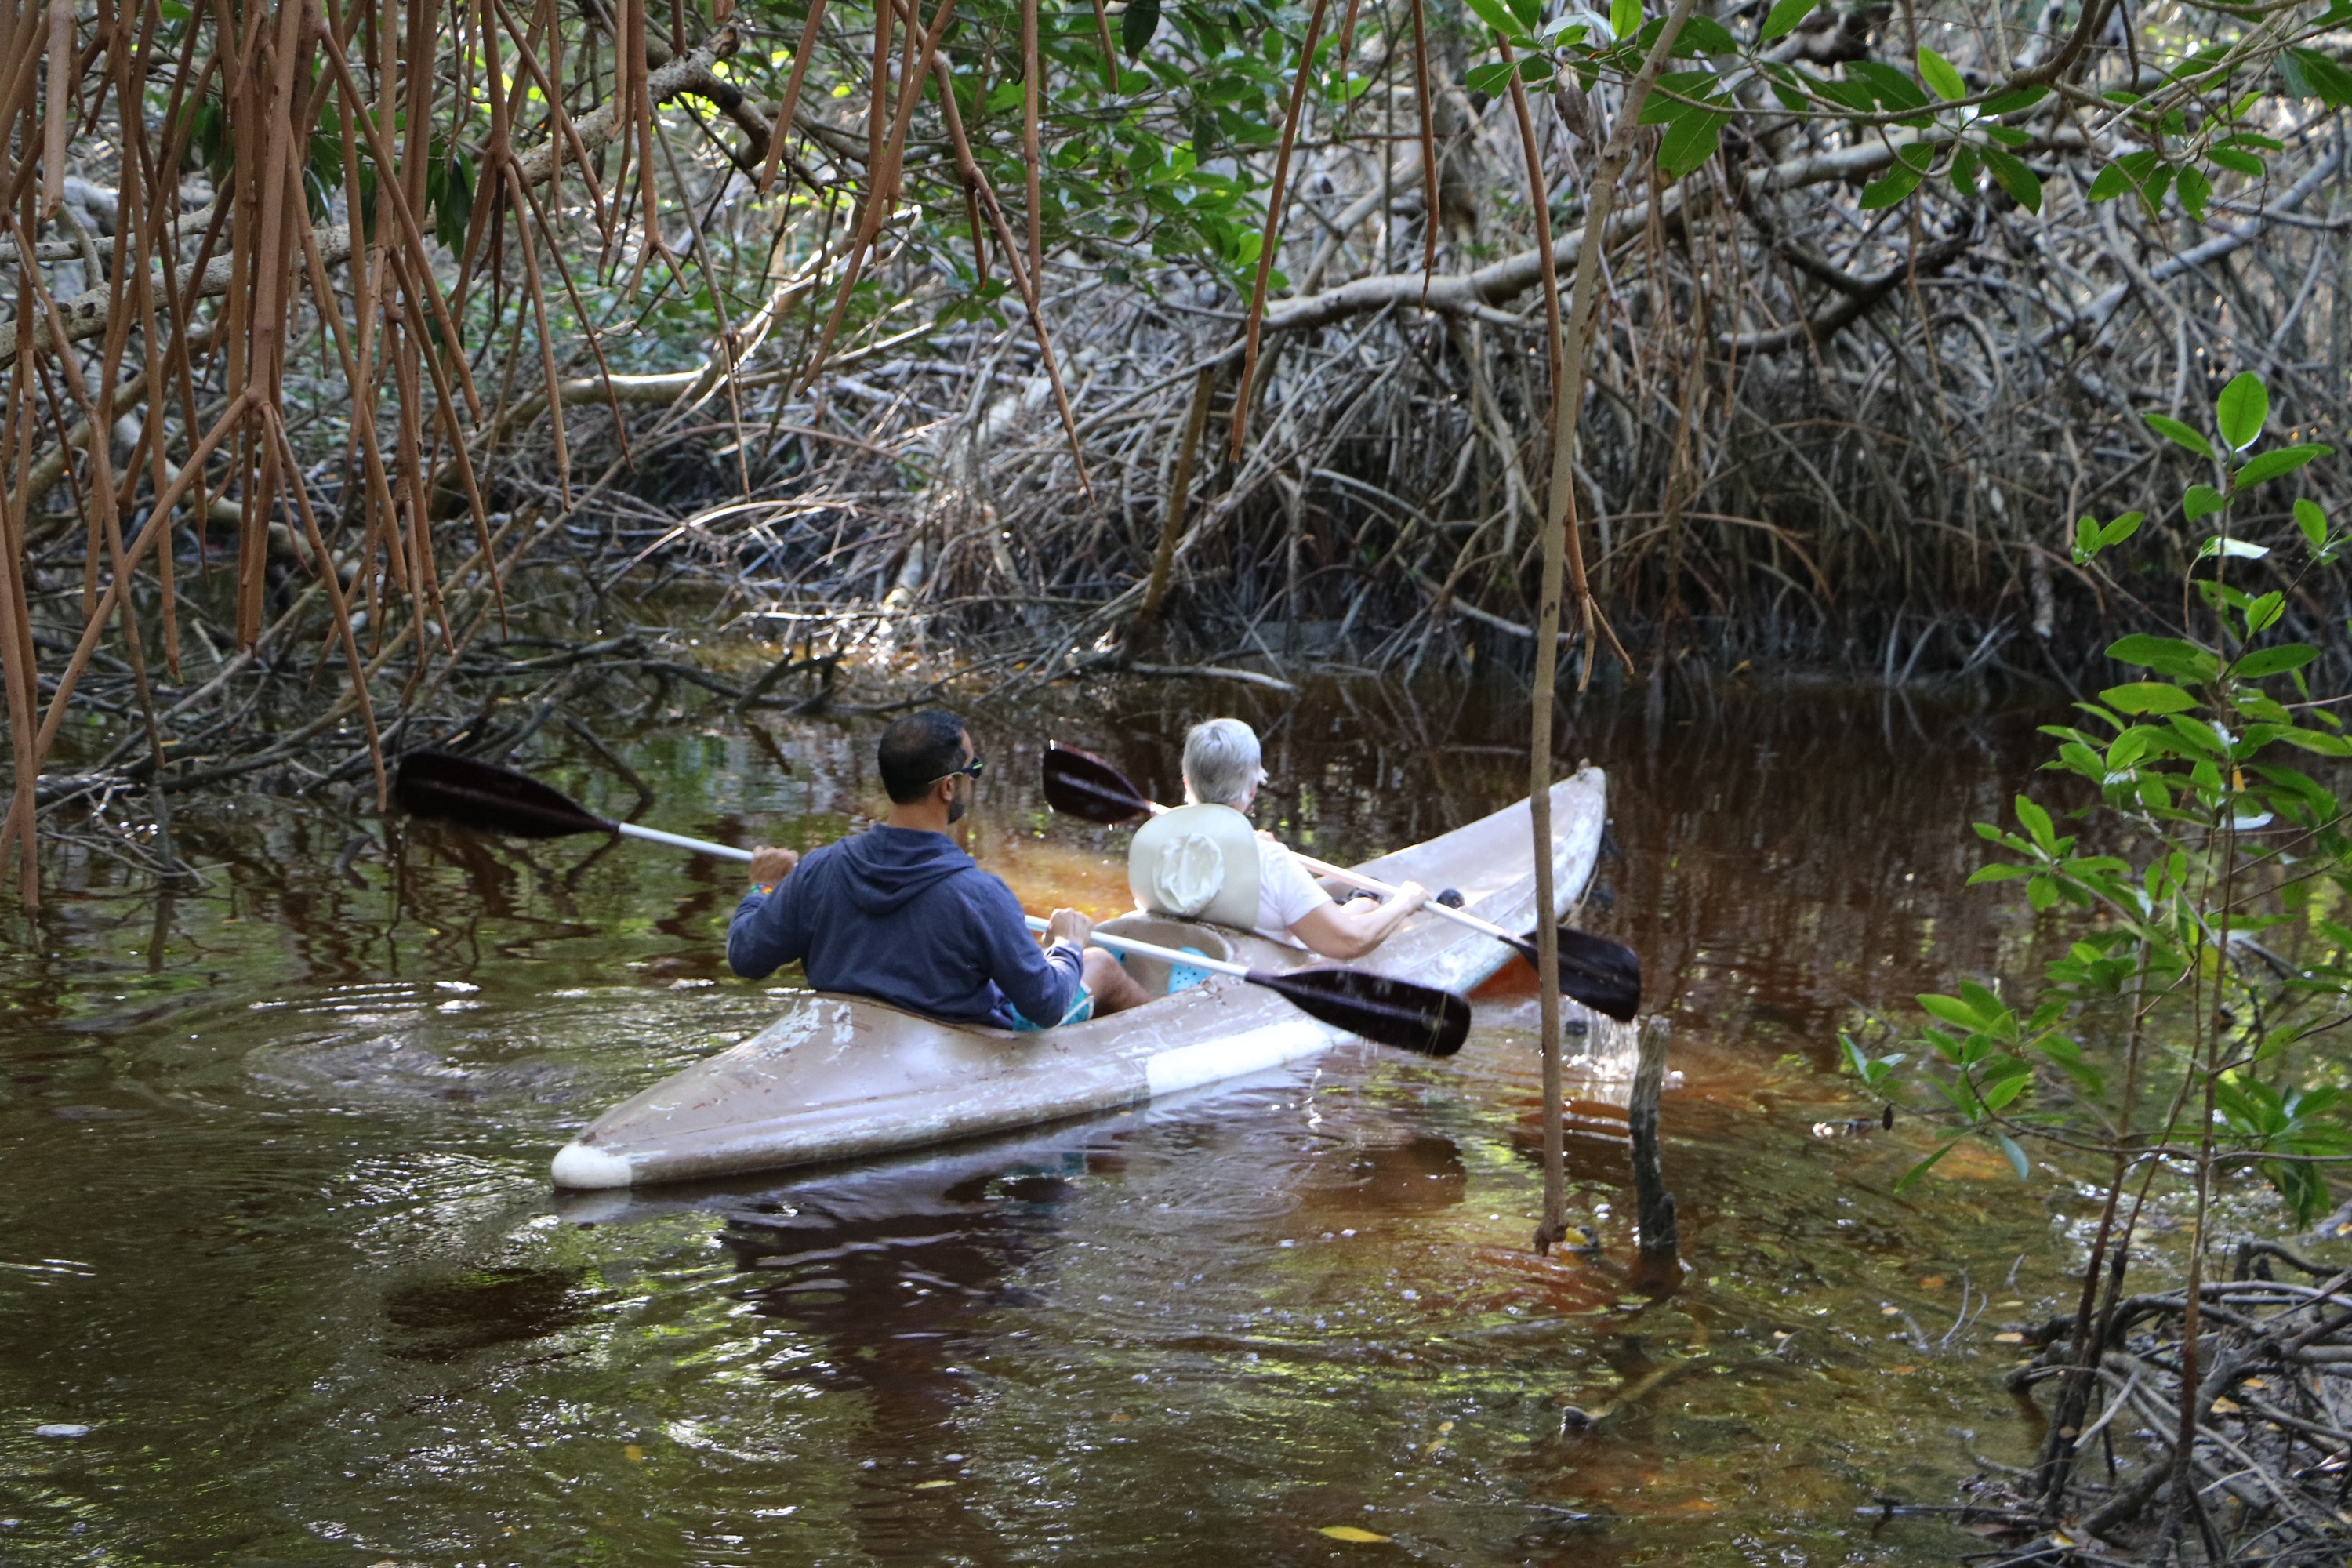 Kayak in the Mangrove